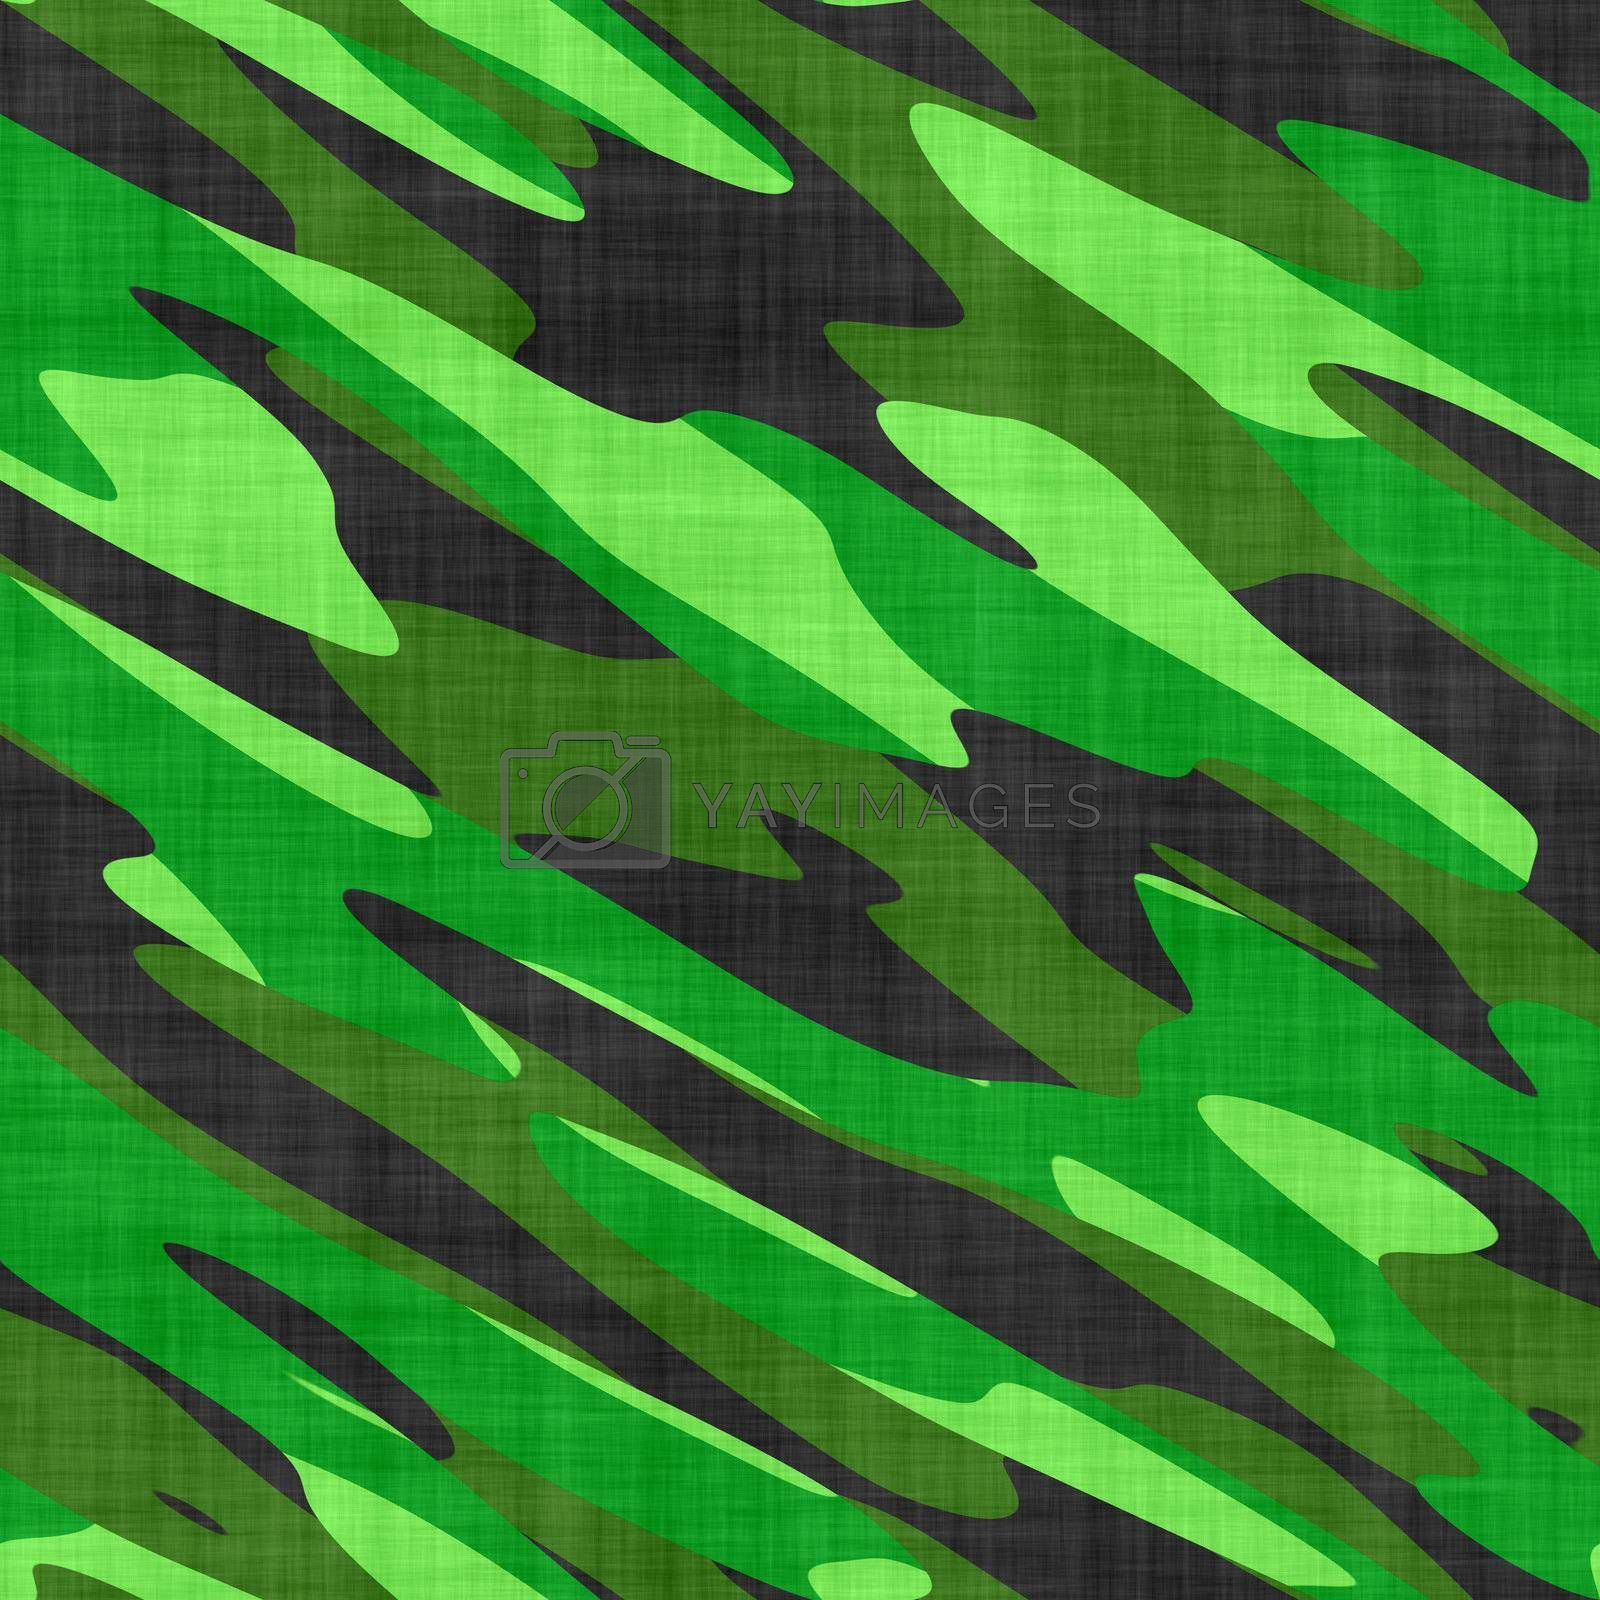 A military comouflage texture - this tiles seamlessly as a pattern.